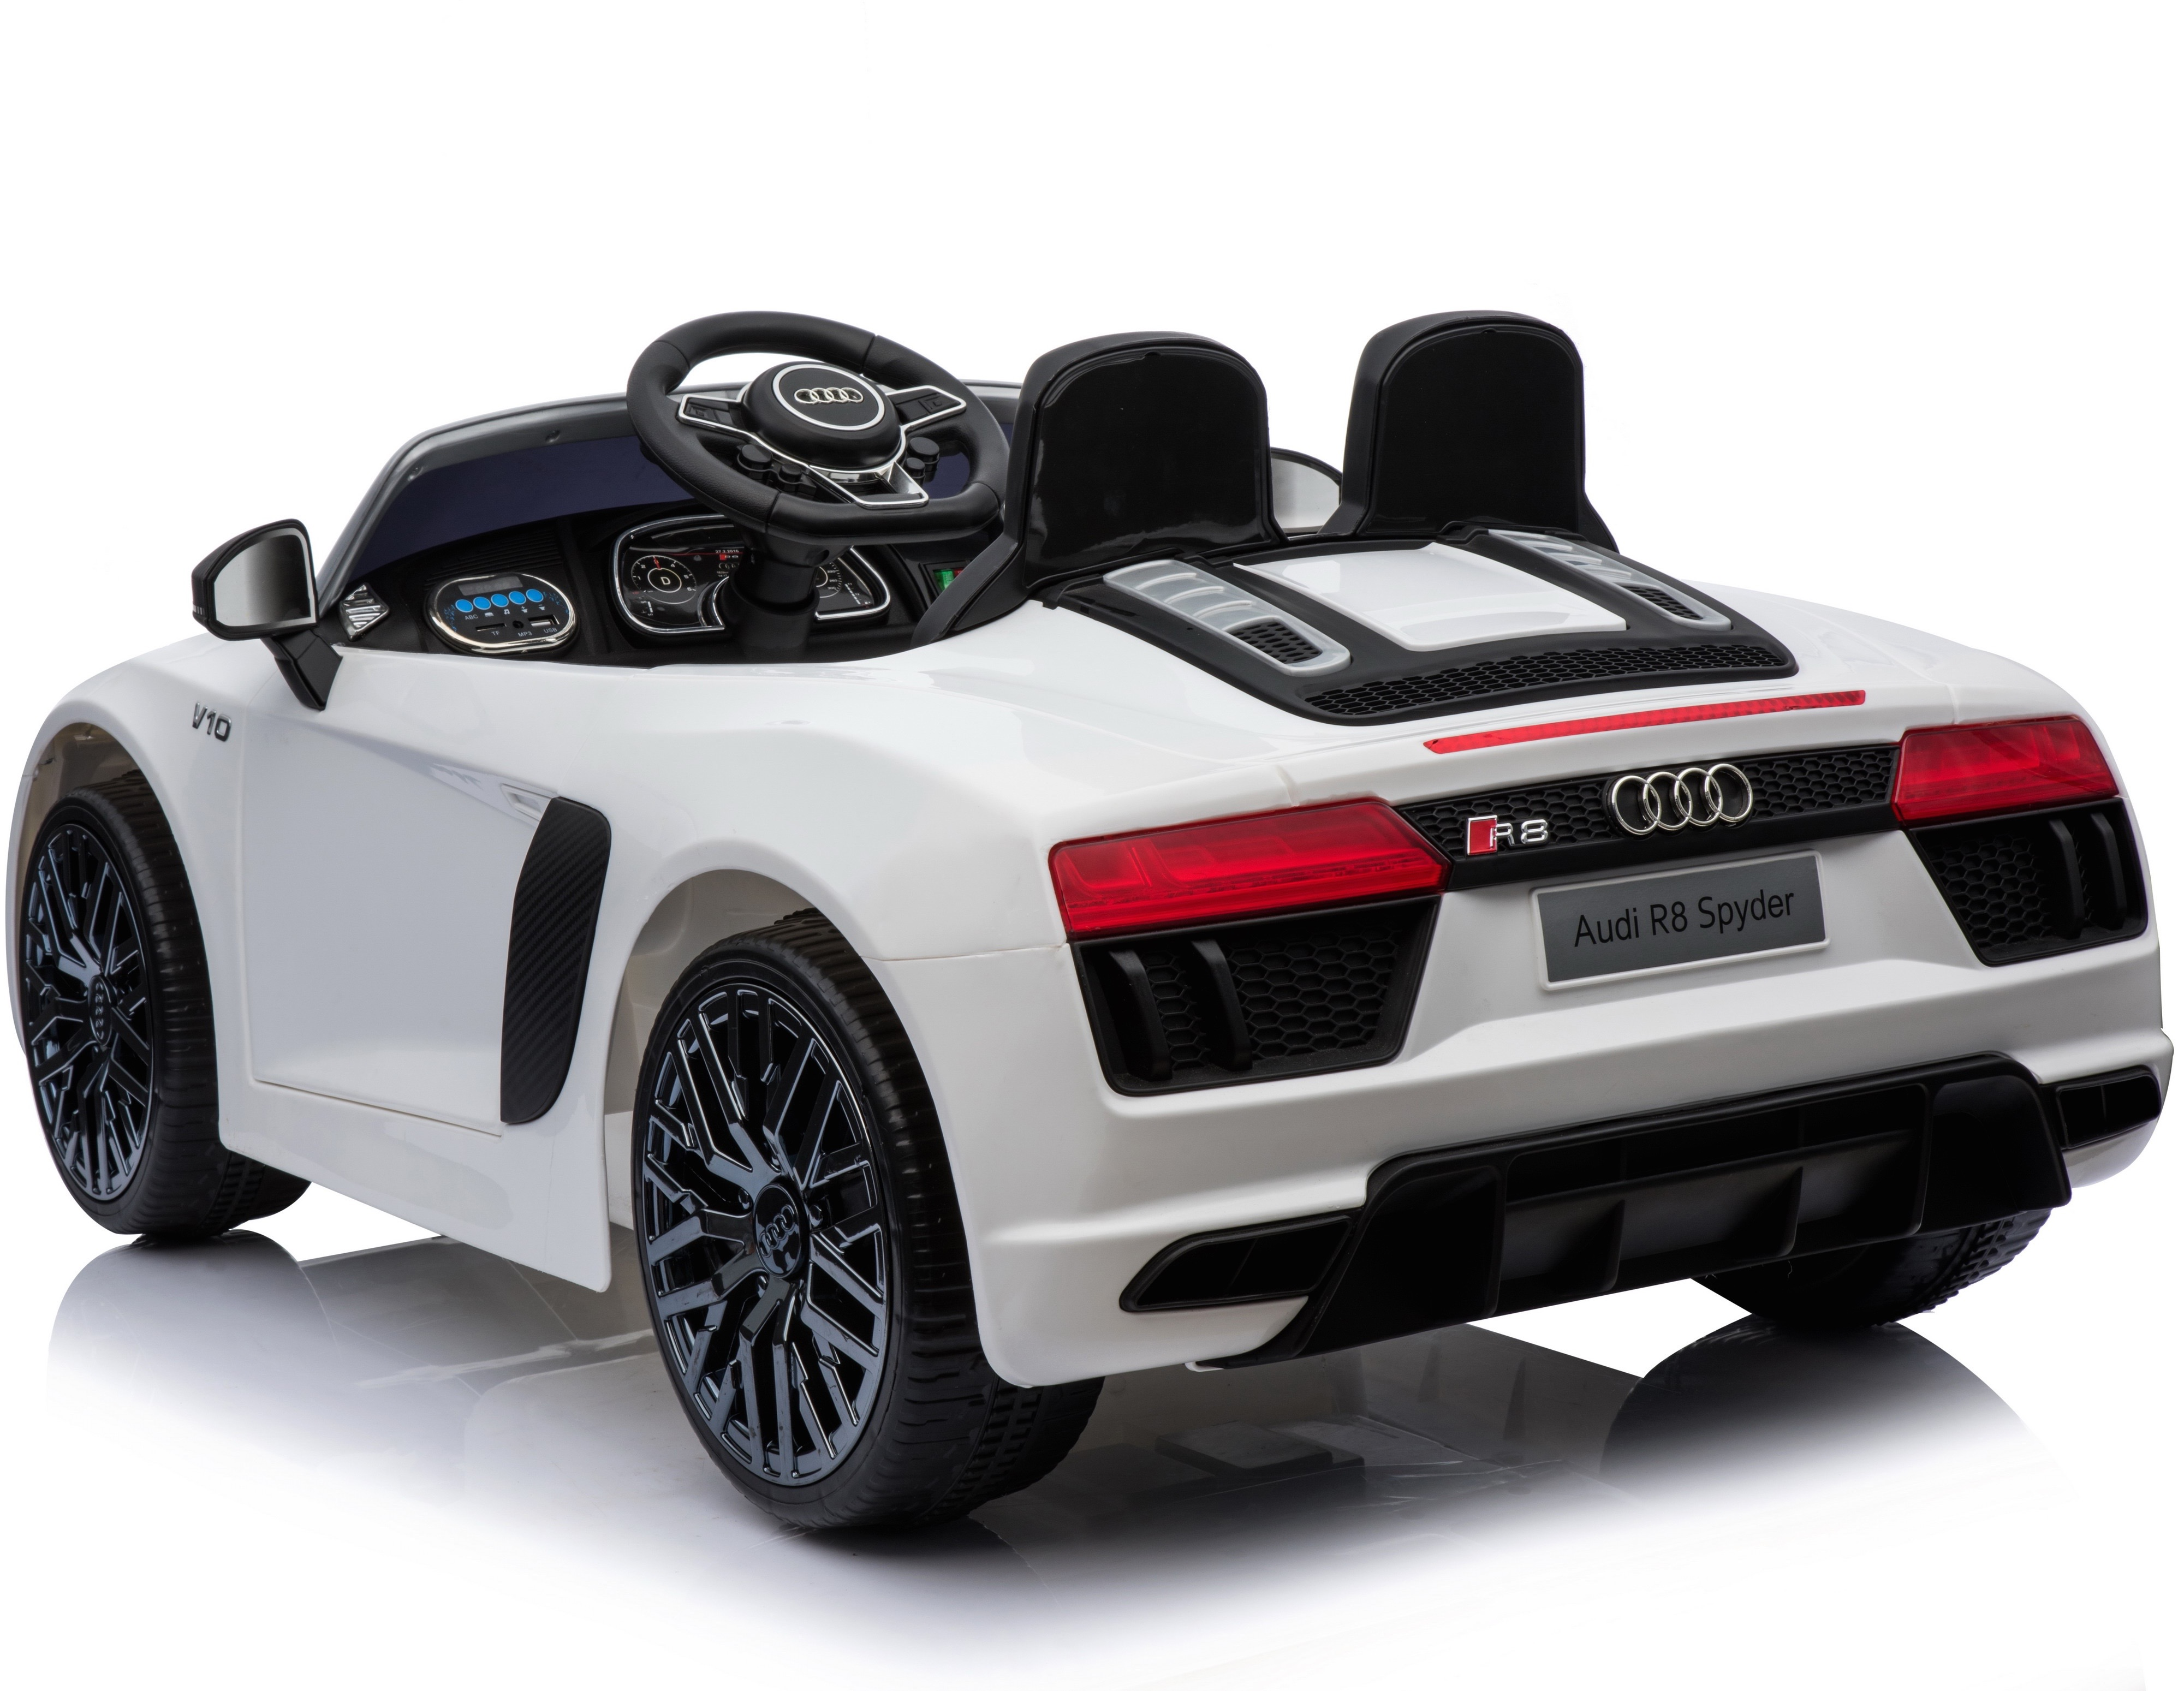 ece42cc98ee76 New Shape Licensed Audi R8 Spyder 12V Child s Electric Ride On Car - White